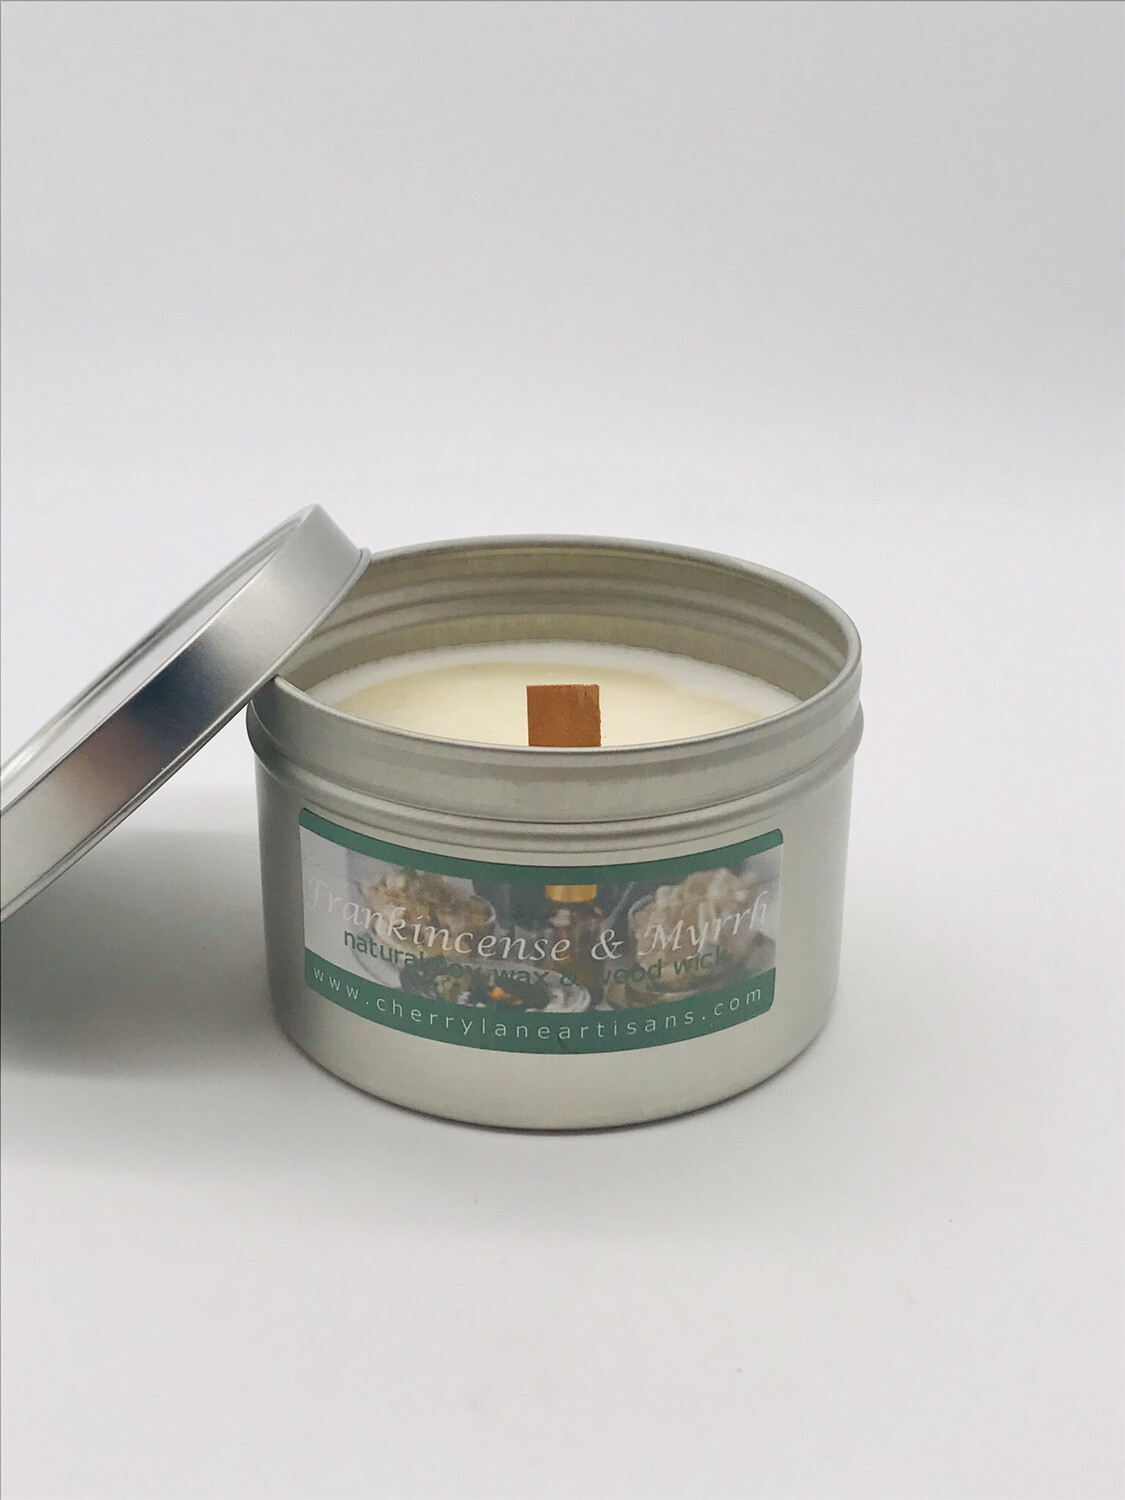 Frank & Myrrh Scented Soy Wax Candle with Wood Wick, 6 oz Tin.